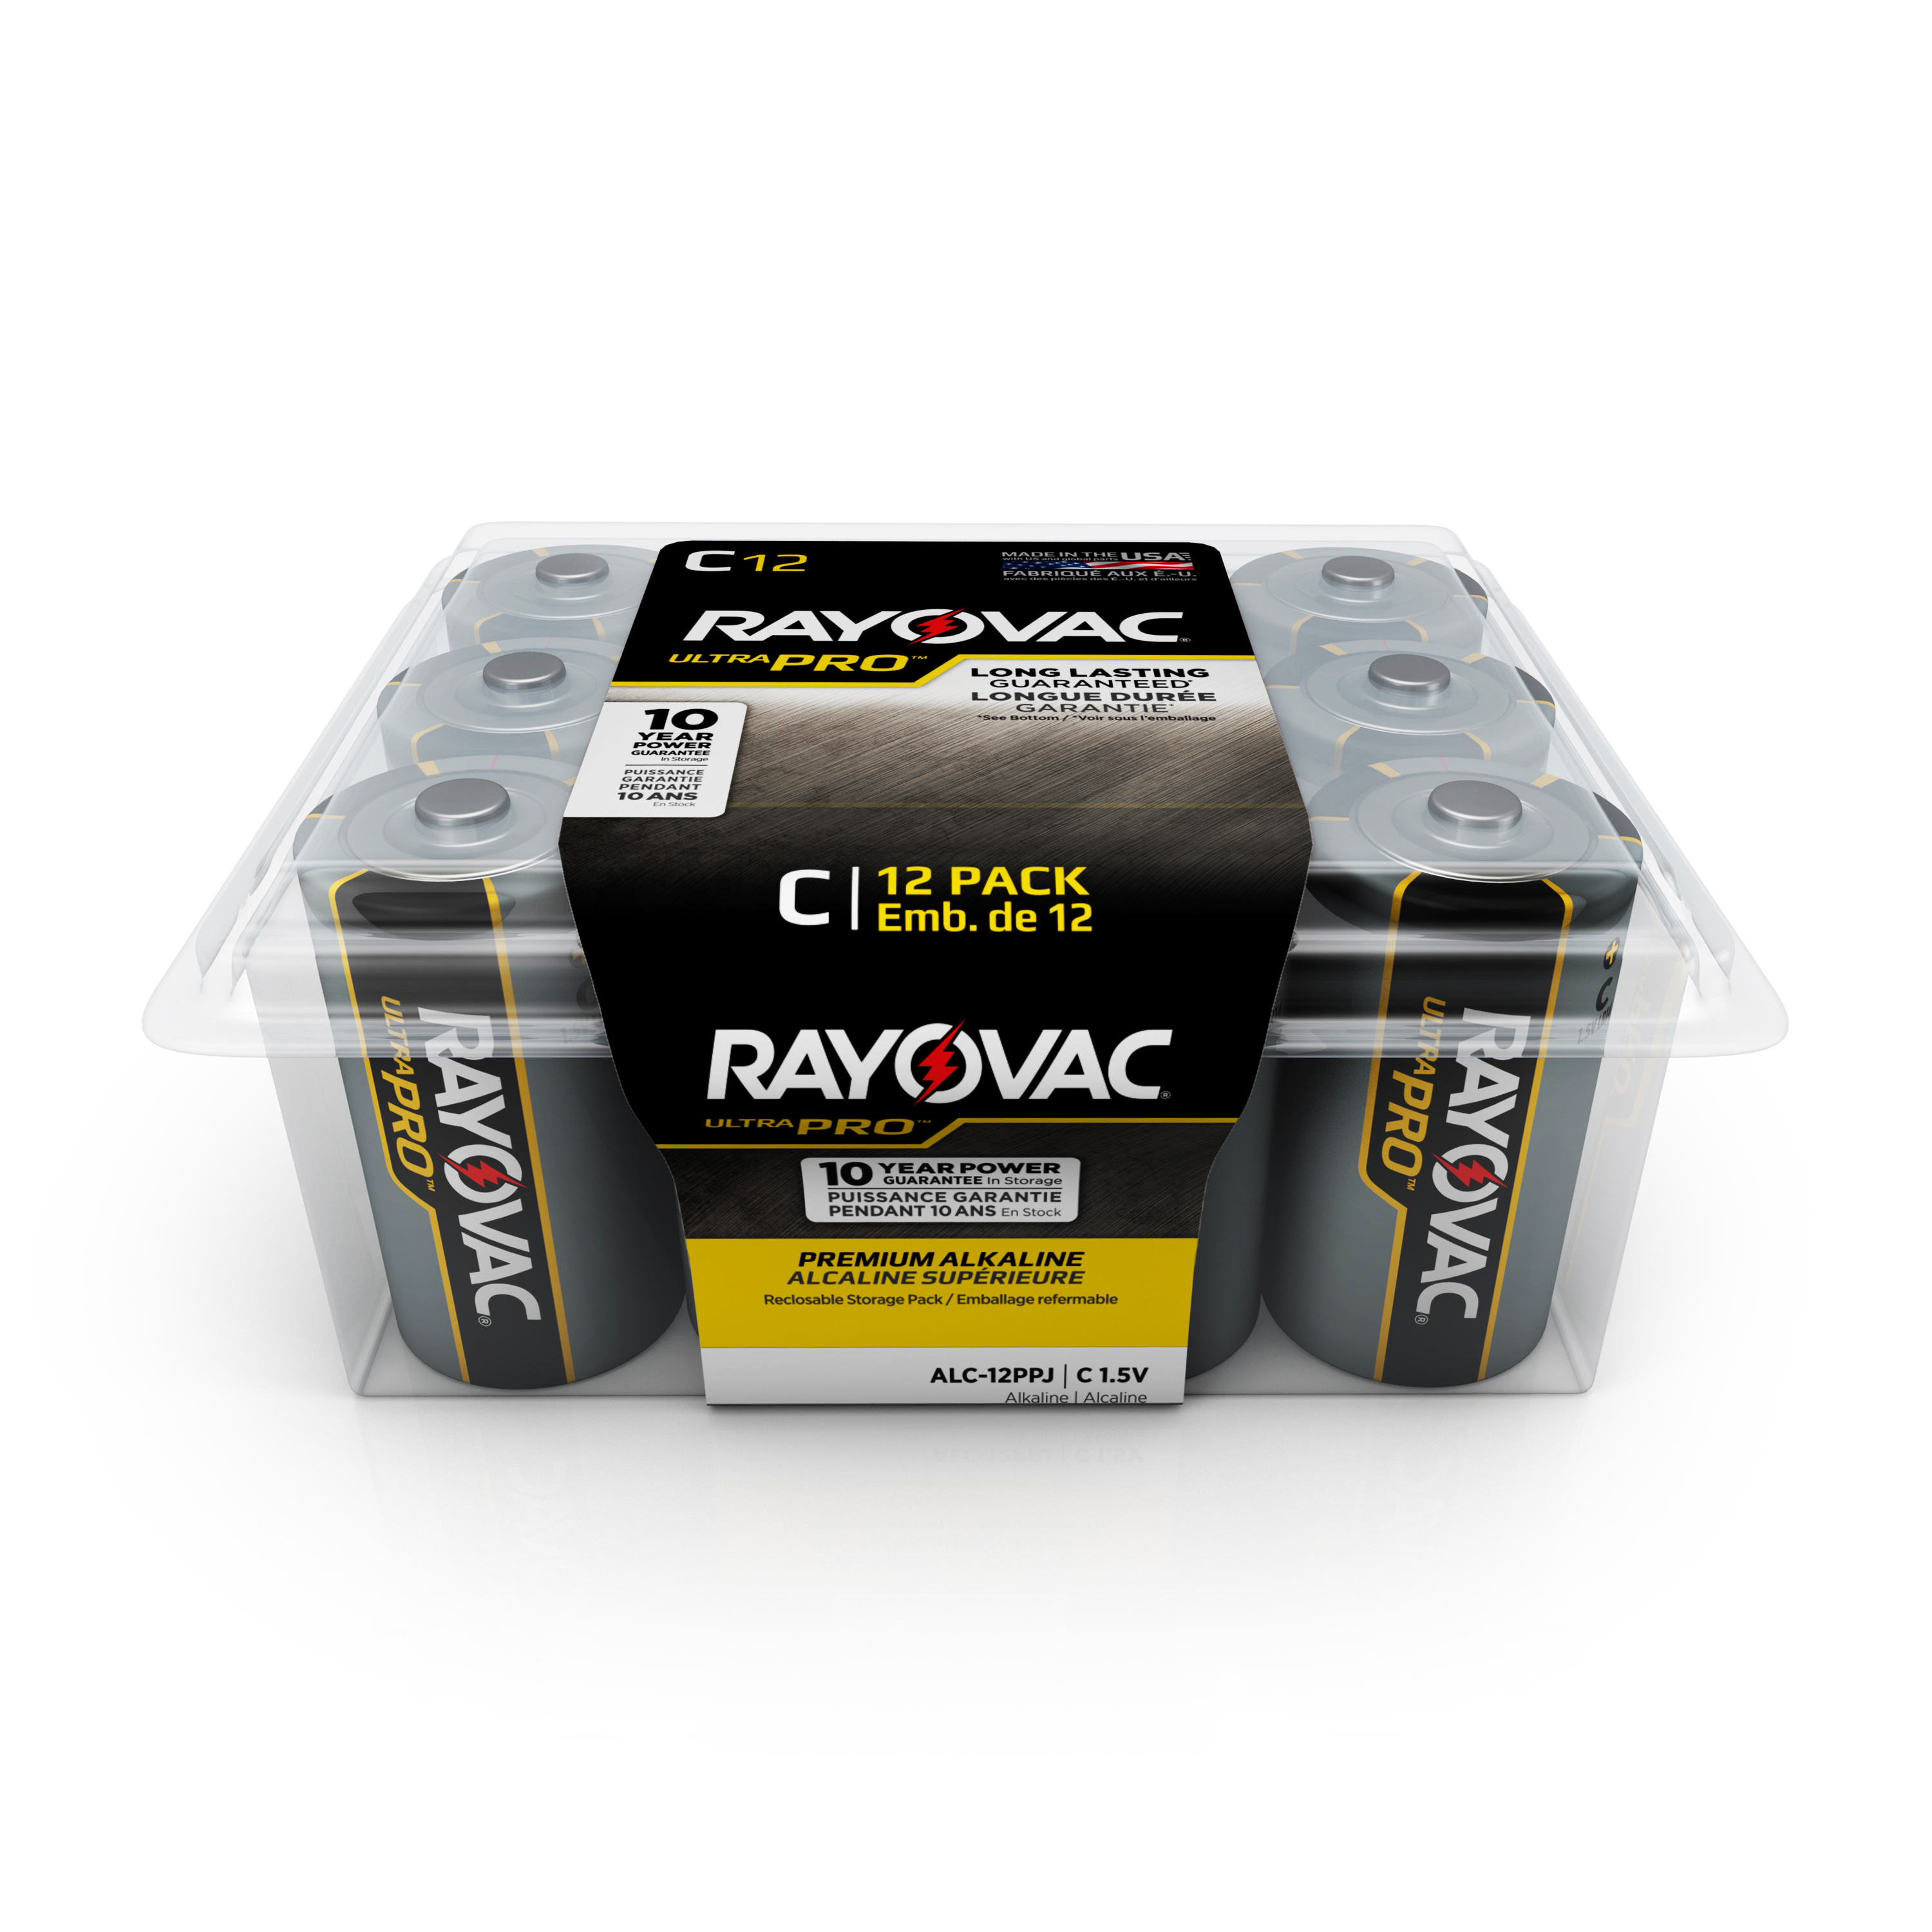 Rayovac UltraPro Alkaline, C Batteries, 12 Count